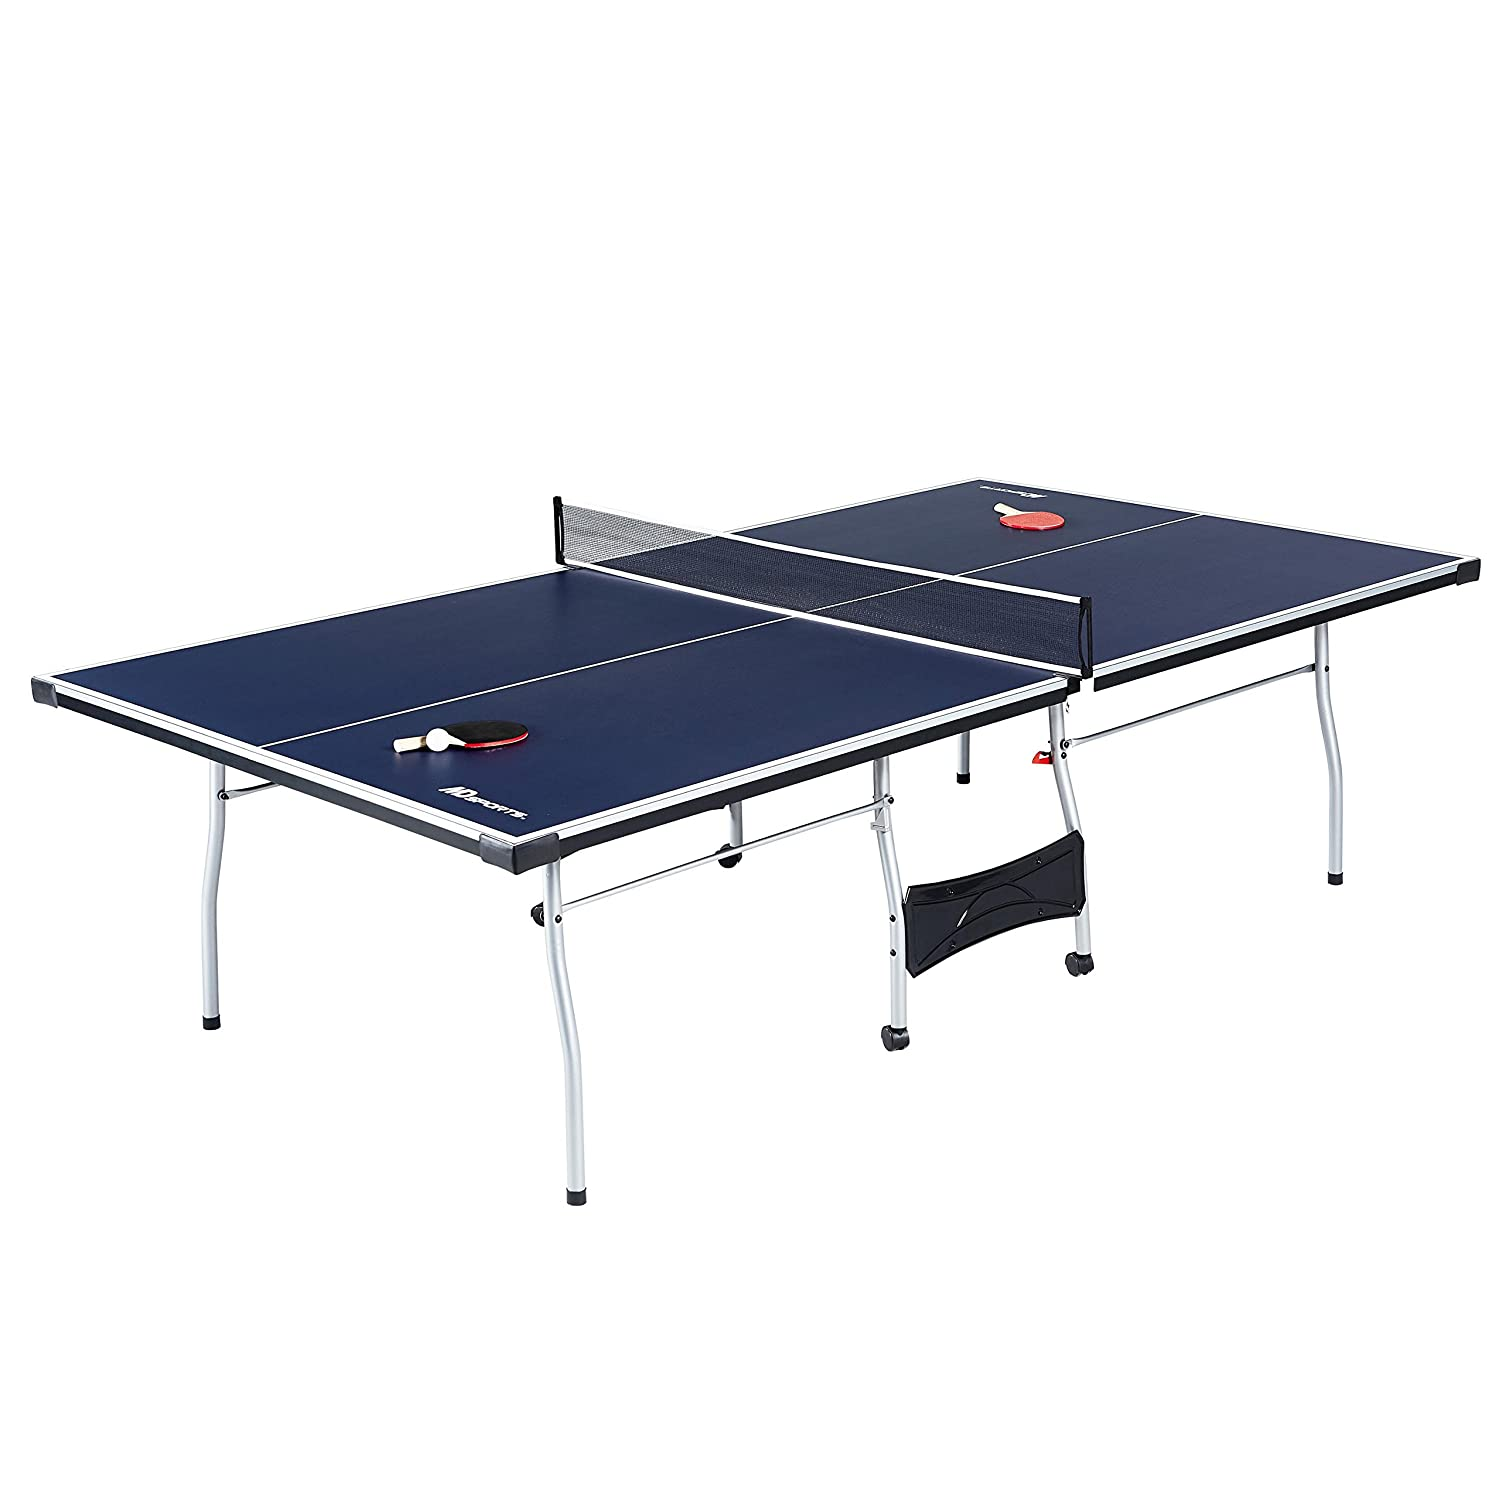 Ping Pong Table midsized